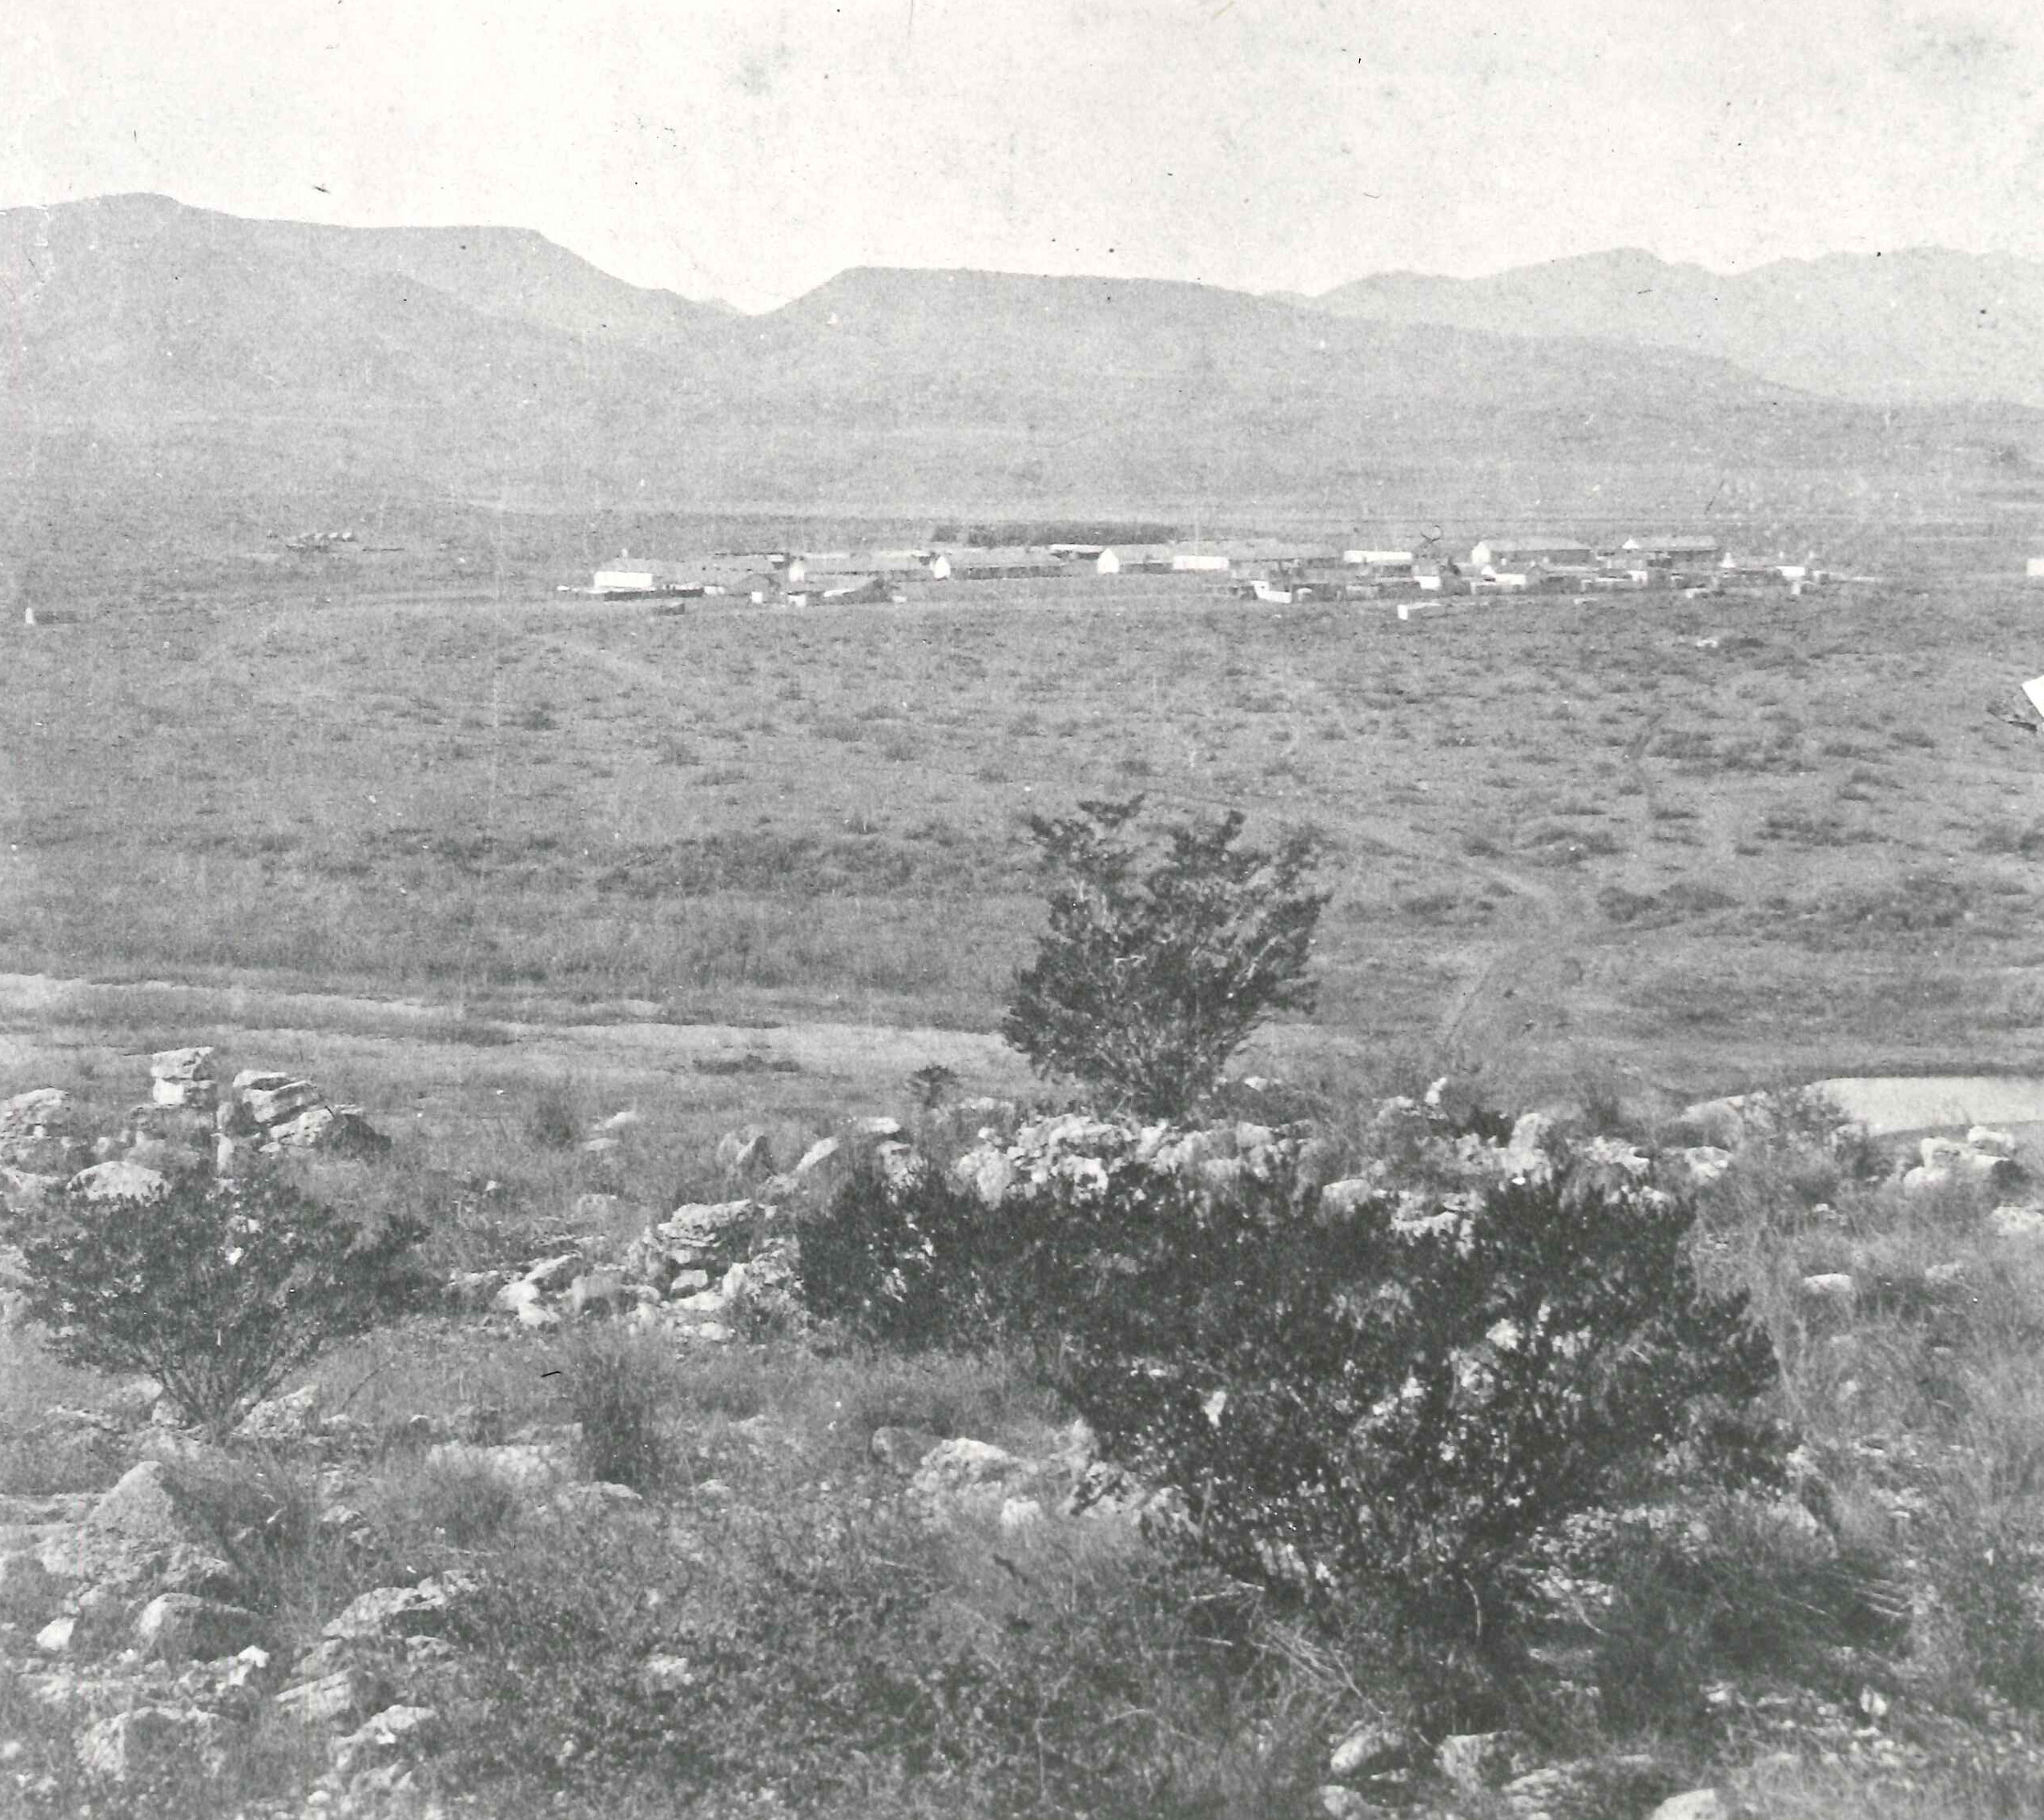 Mid to late 1880s birds eye view of Verde and surrounding countryside at the time